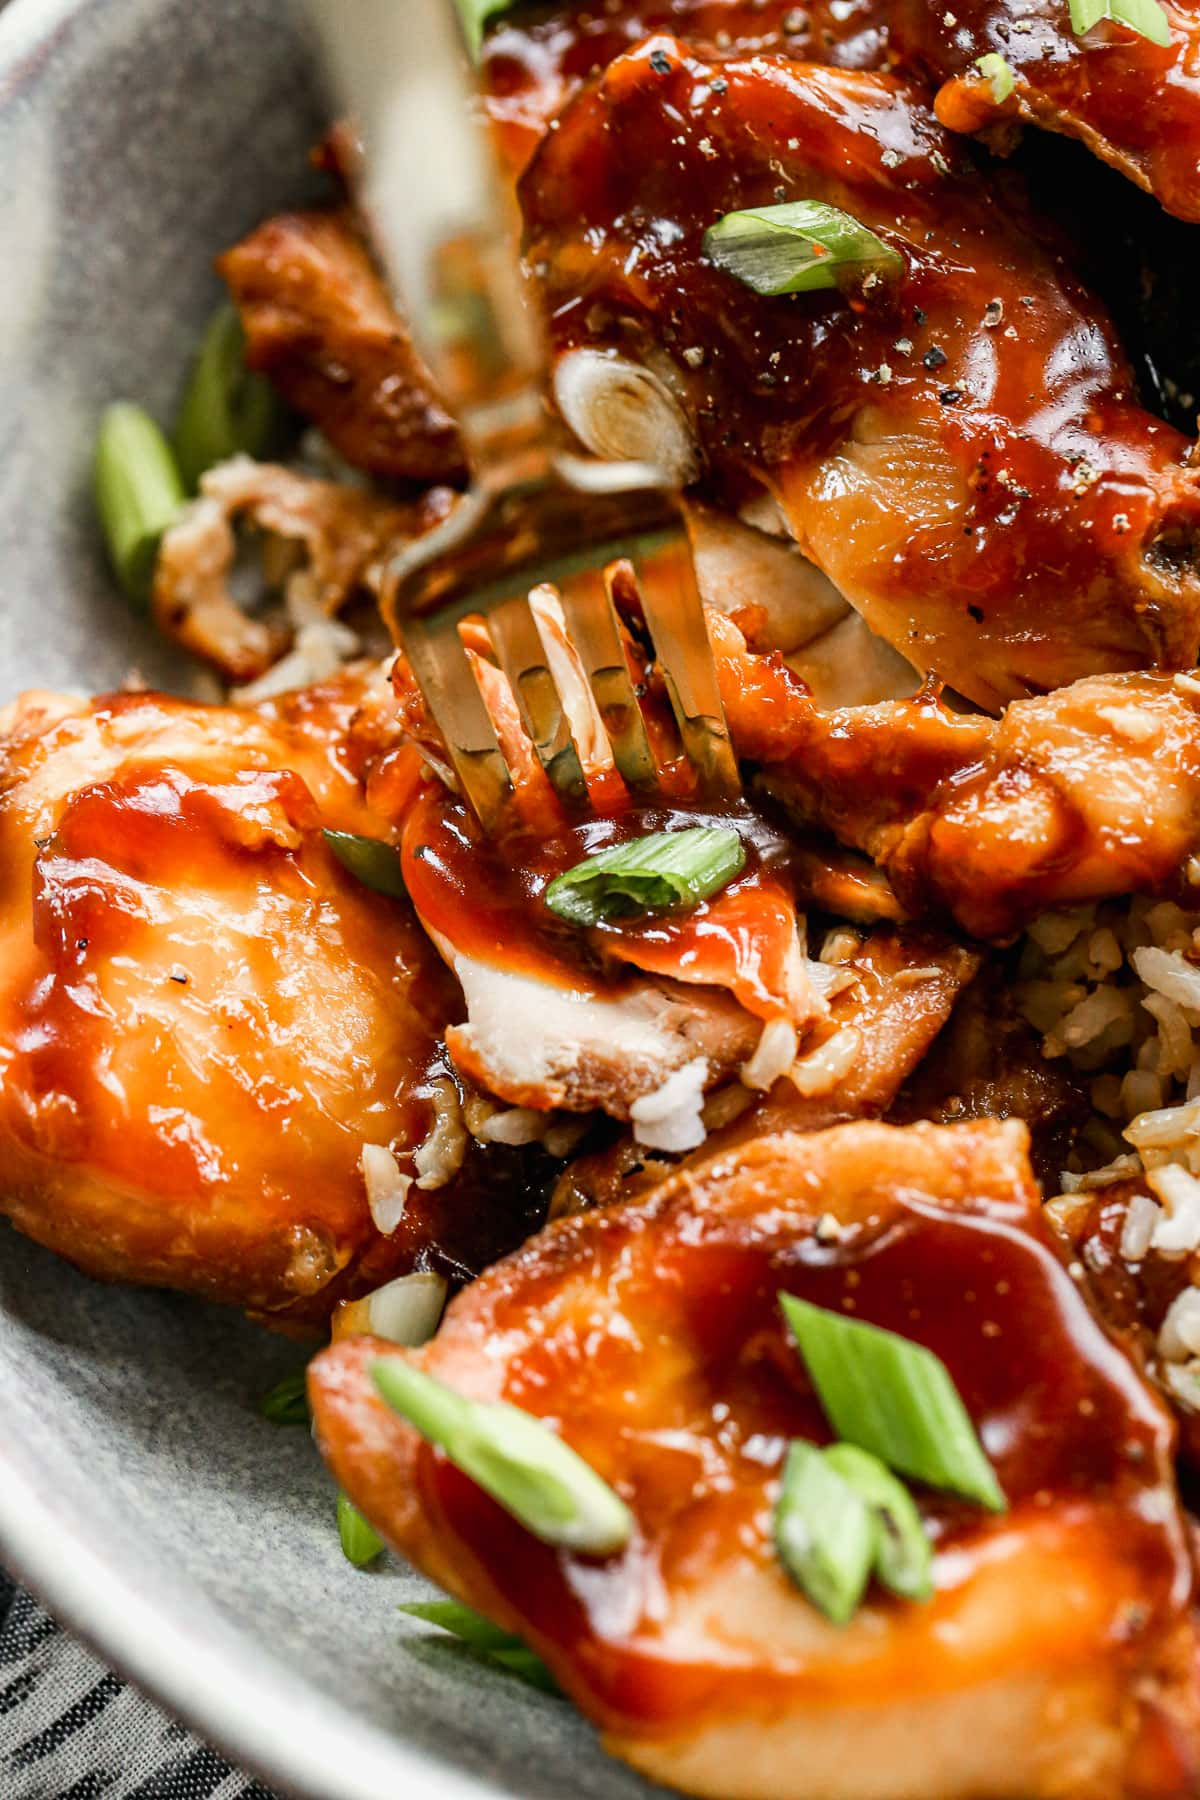 Crock Pot Bourbon Chicken — this tastes just like the Bourbon chicken at Chinese take out restaurants, but is made of simple, real ingredients. Sweet, smoky, and our whole family loves it! Serve with rice for an easy meal. @wellplated